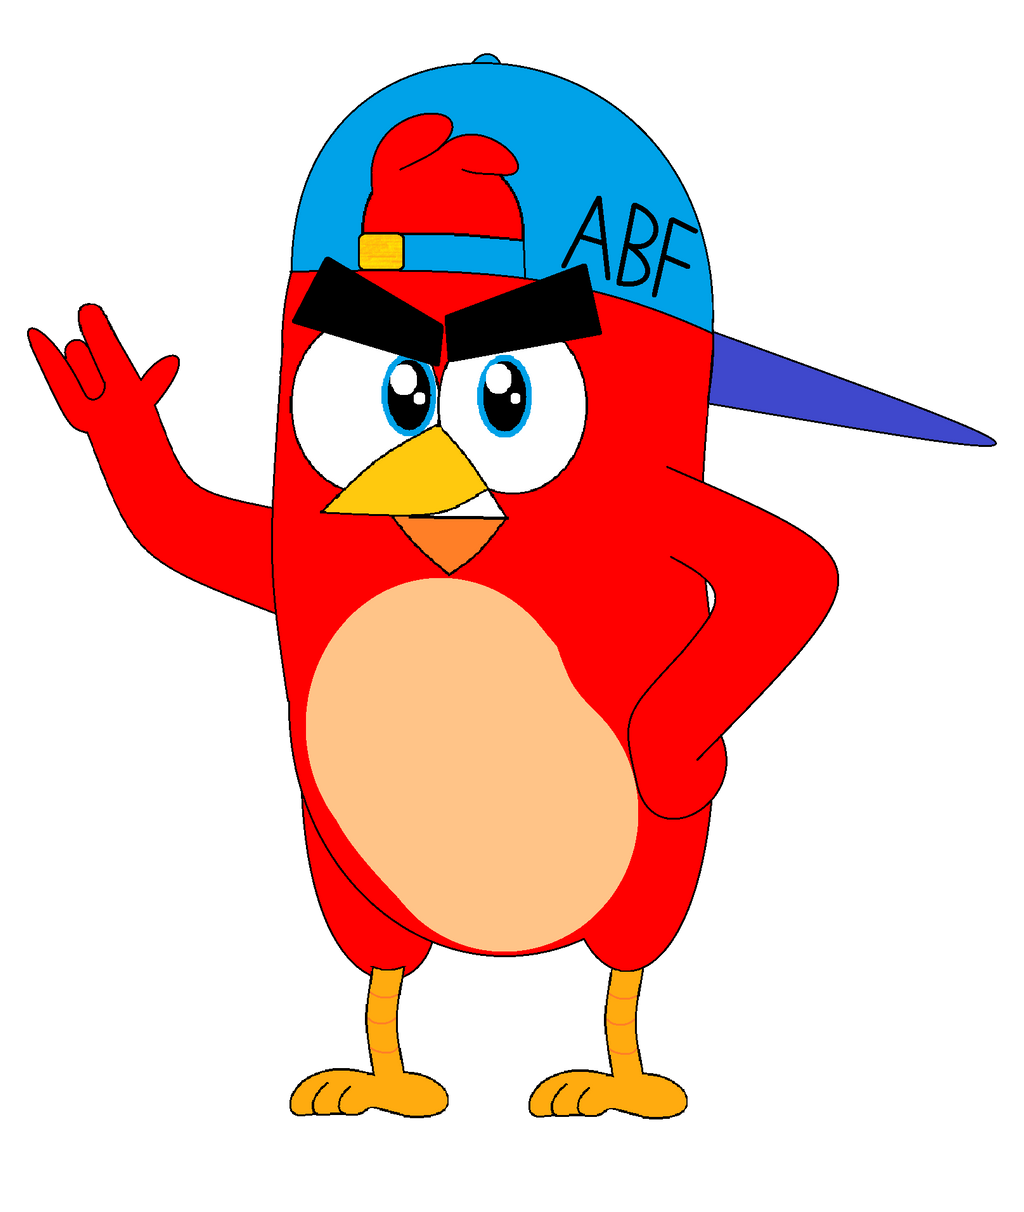 AngryBirdFan's Profile Picture